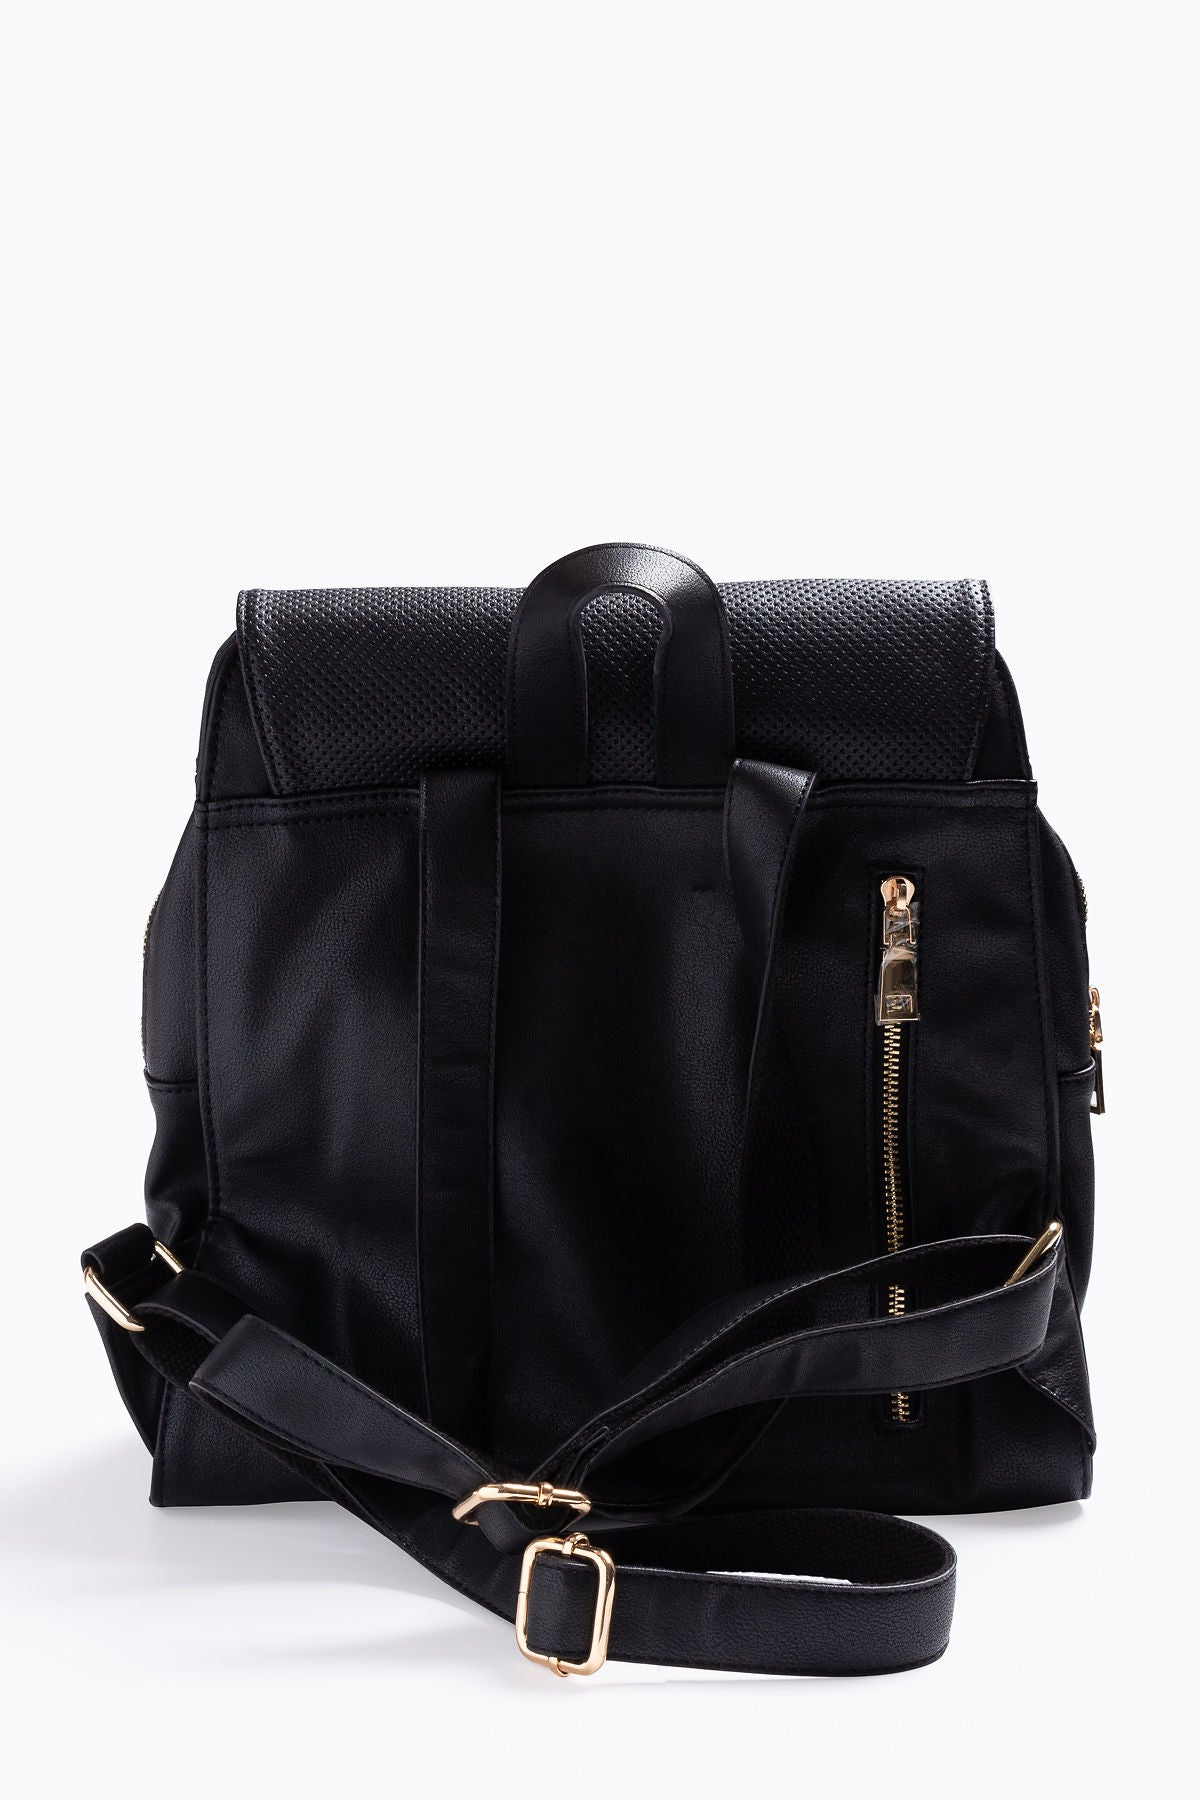 The Mick Perforated Daypack in Black